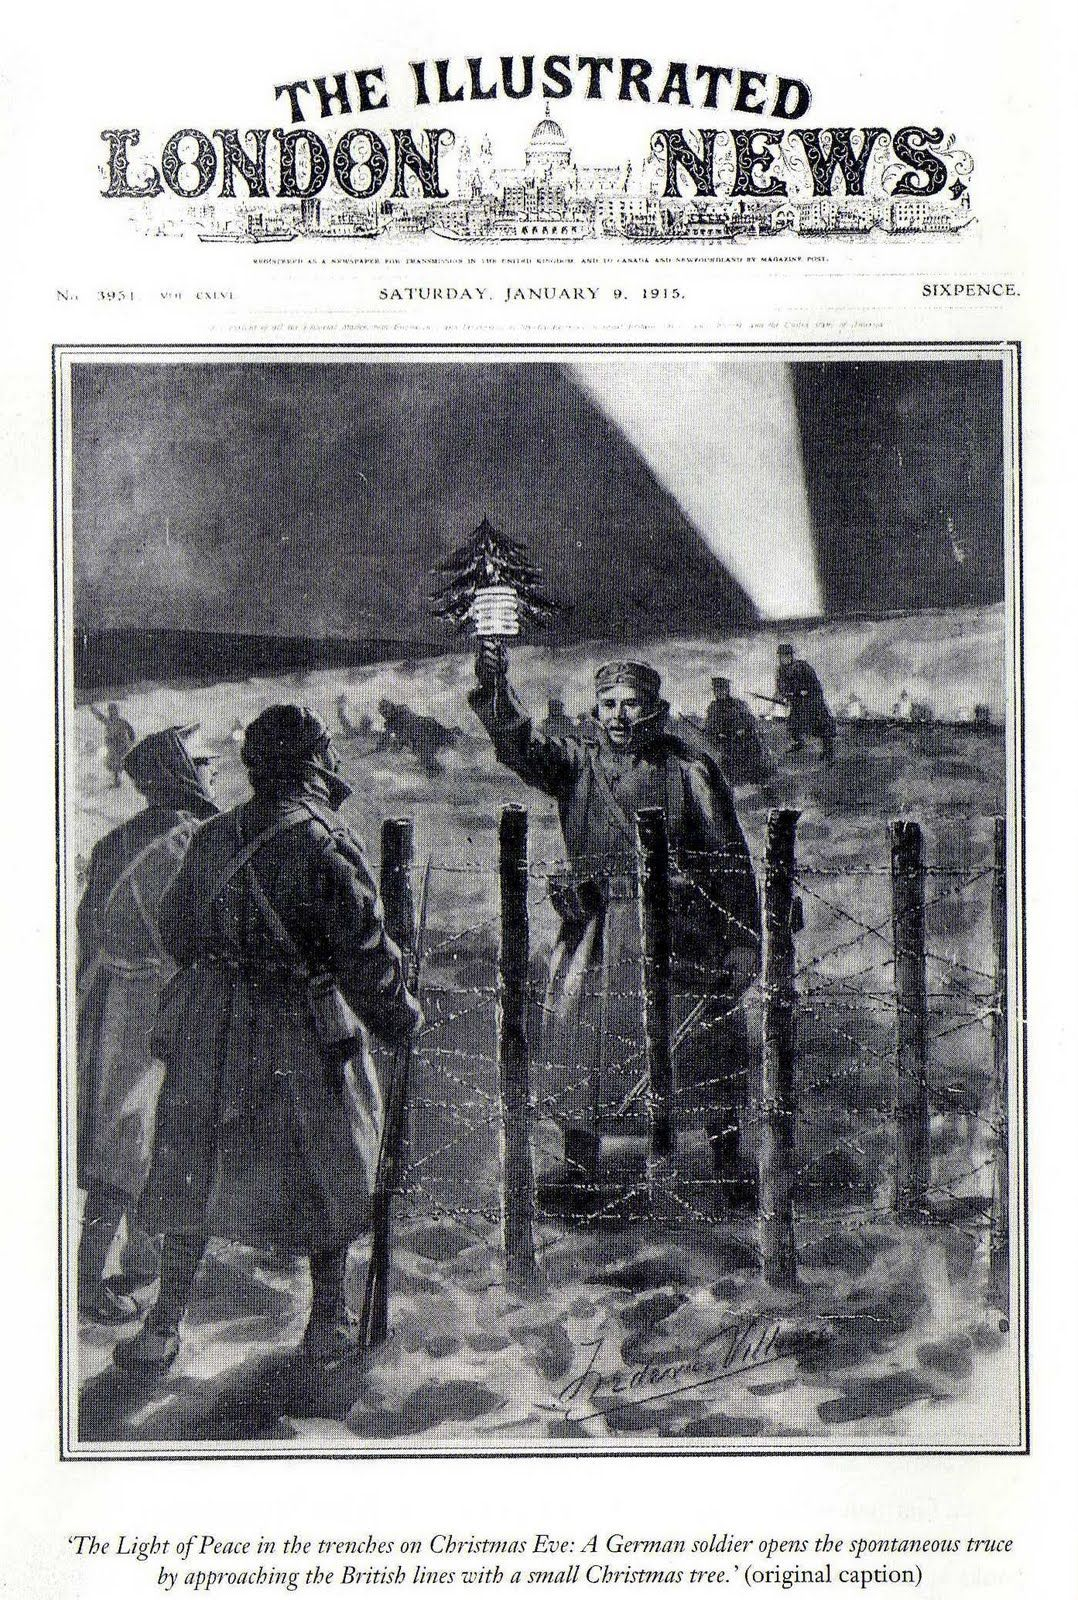 the christmas truce of christmas 1914 essay Why did the christmas truce become important conclusion an historical event in 25 december of 1914 many soldiers of both sides (germans and british) went to no man's land to exchange gifts and play football.